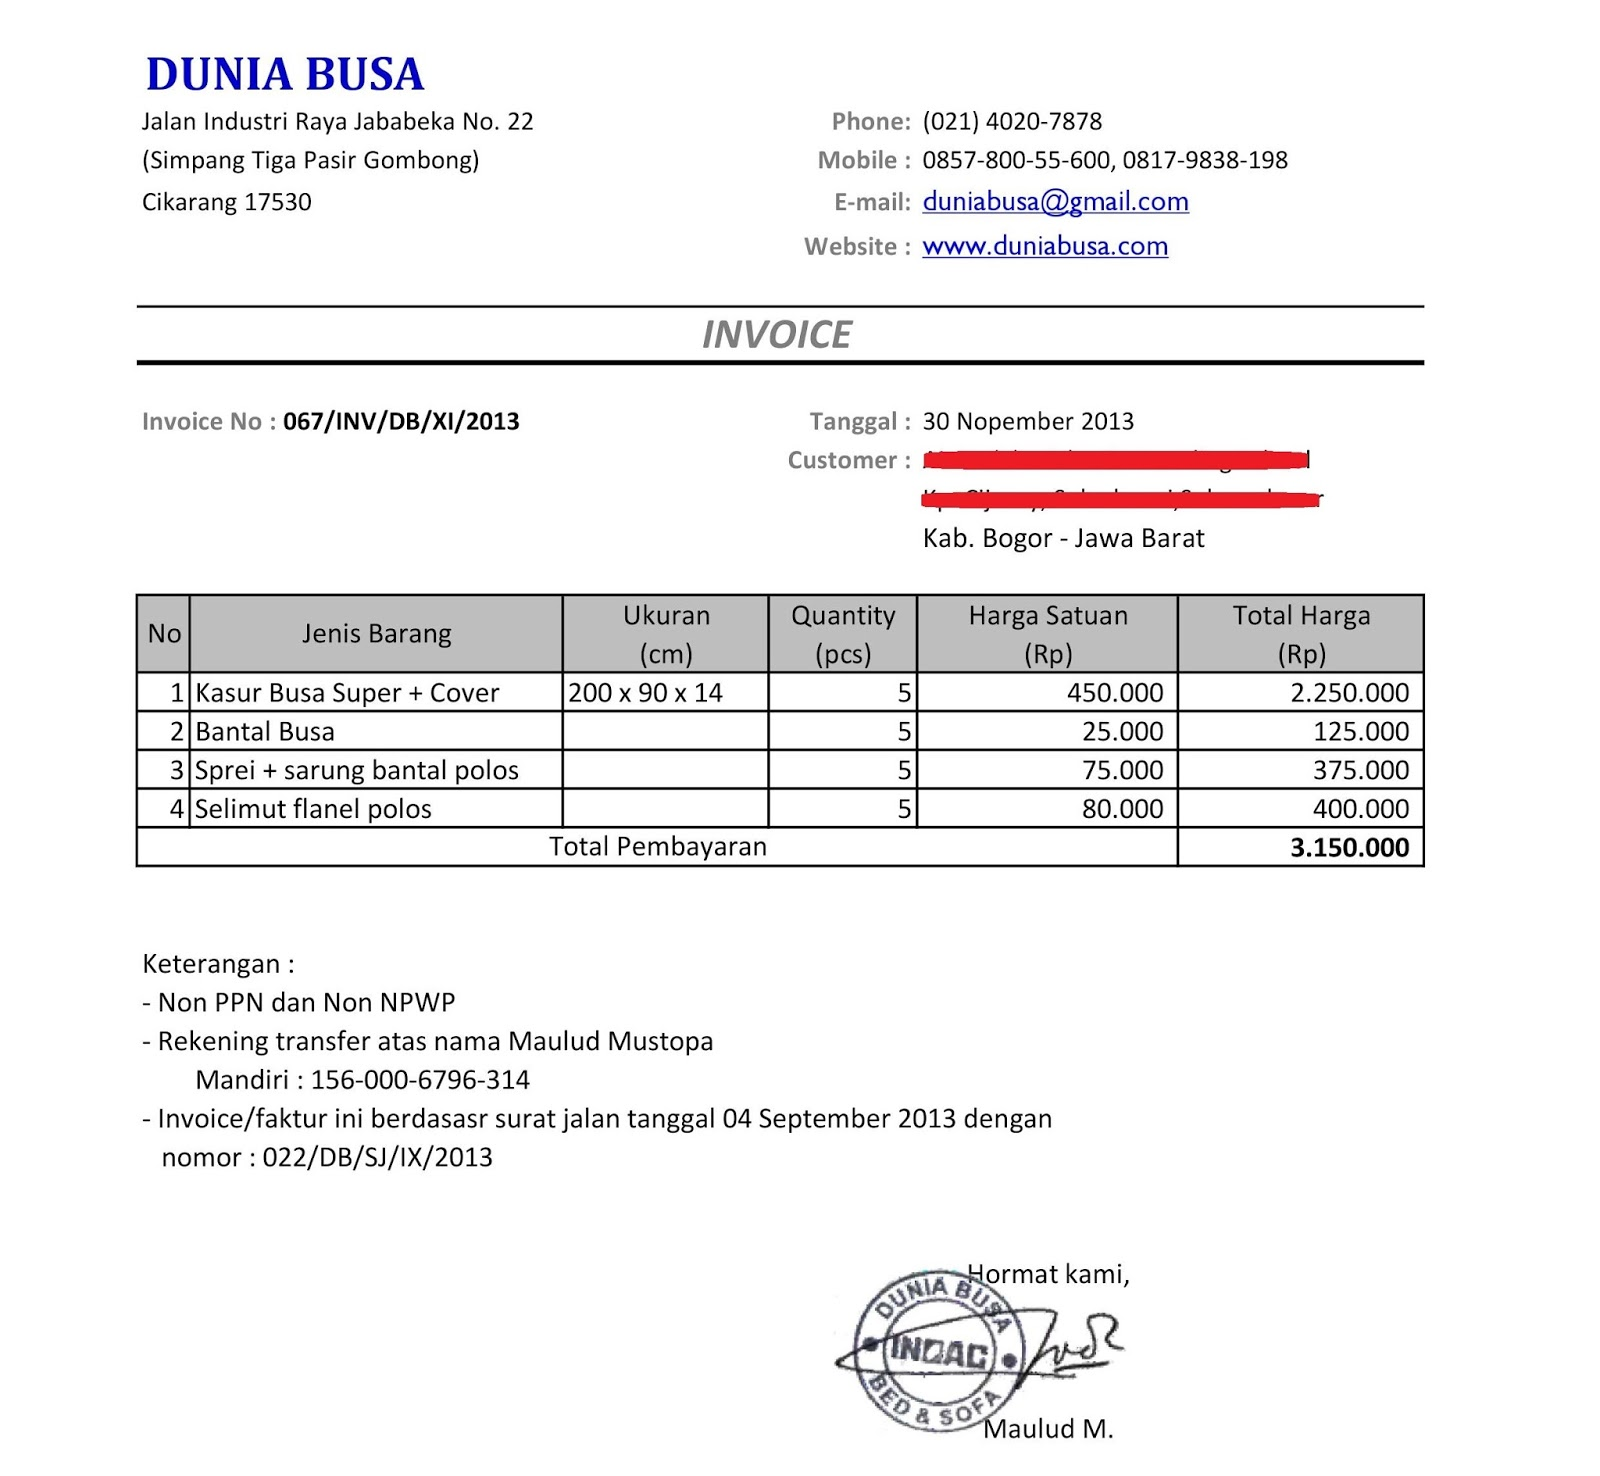 Centralasianshepherdus  Remarkable Free Invoice Online  Create Invoice Online  Invoice Template  With Inspiring Contoh Format Invoice Atau Surat Tagihan  Brankas Arsip  Free Invoice Online With Divine Invoice For Paypal Also To Invoice In Addition Microsoft Word  Invoice Template And Invoice Template Docx As Well As Pre Printed Invoices Additionally Rent Invoice Sample From Sklepco With Centralasianshepherdus  Inspiring Free Invoice Online  Create Invoice Online  Invoice Template  With Divine Contoh Format Invoice Atau Surat Tagihan  Brankas Arsip  Free Invoice Online And Remarkable Invoice For Paypal Also To Invoice In Addition Microsoft Word  Invoice Template From Sklepco